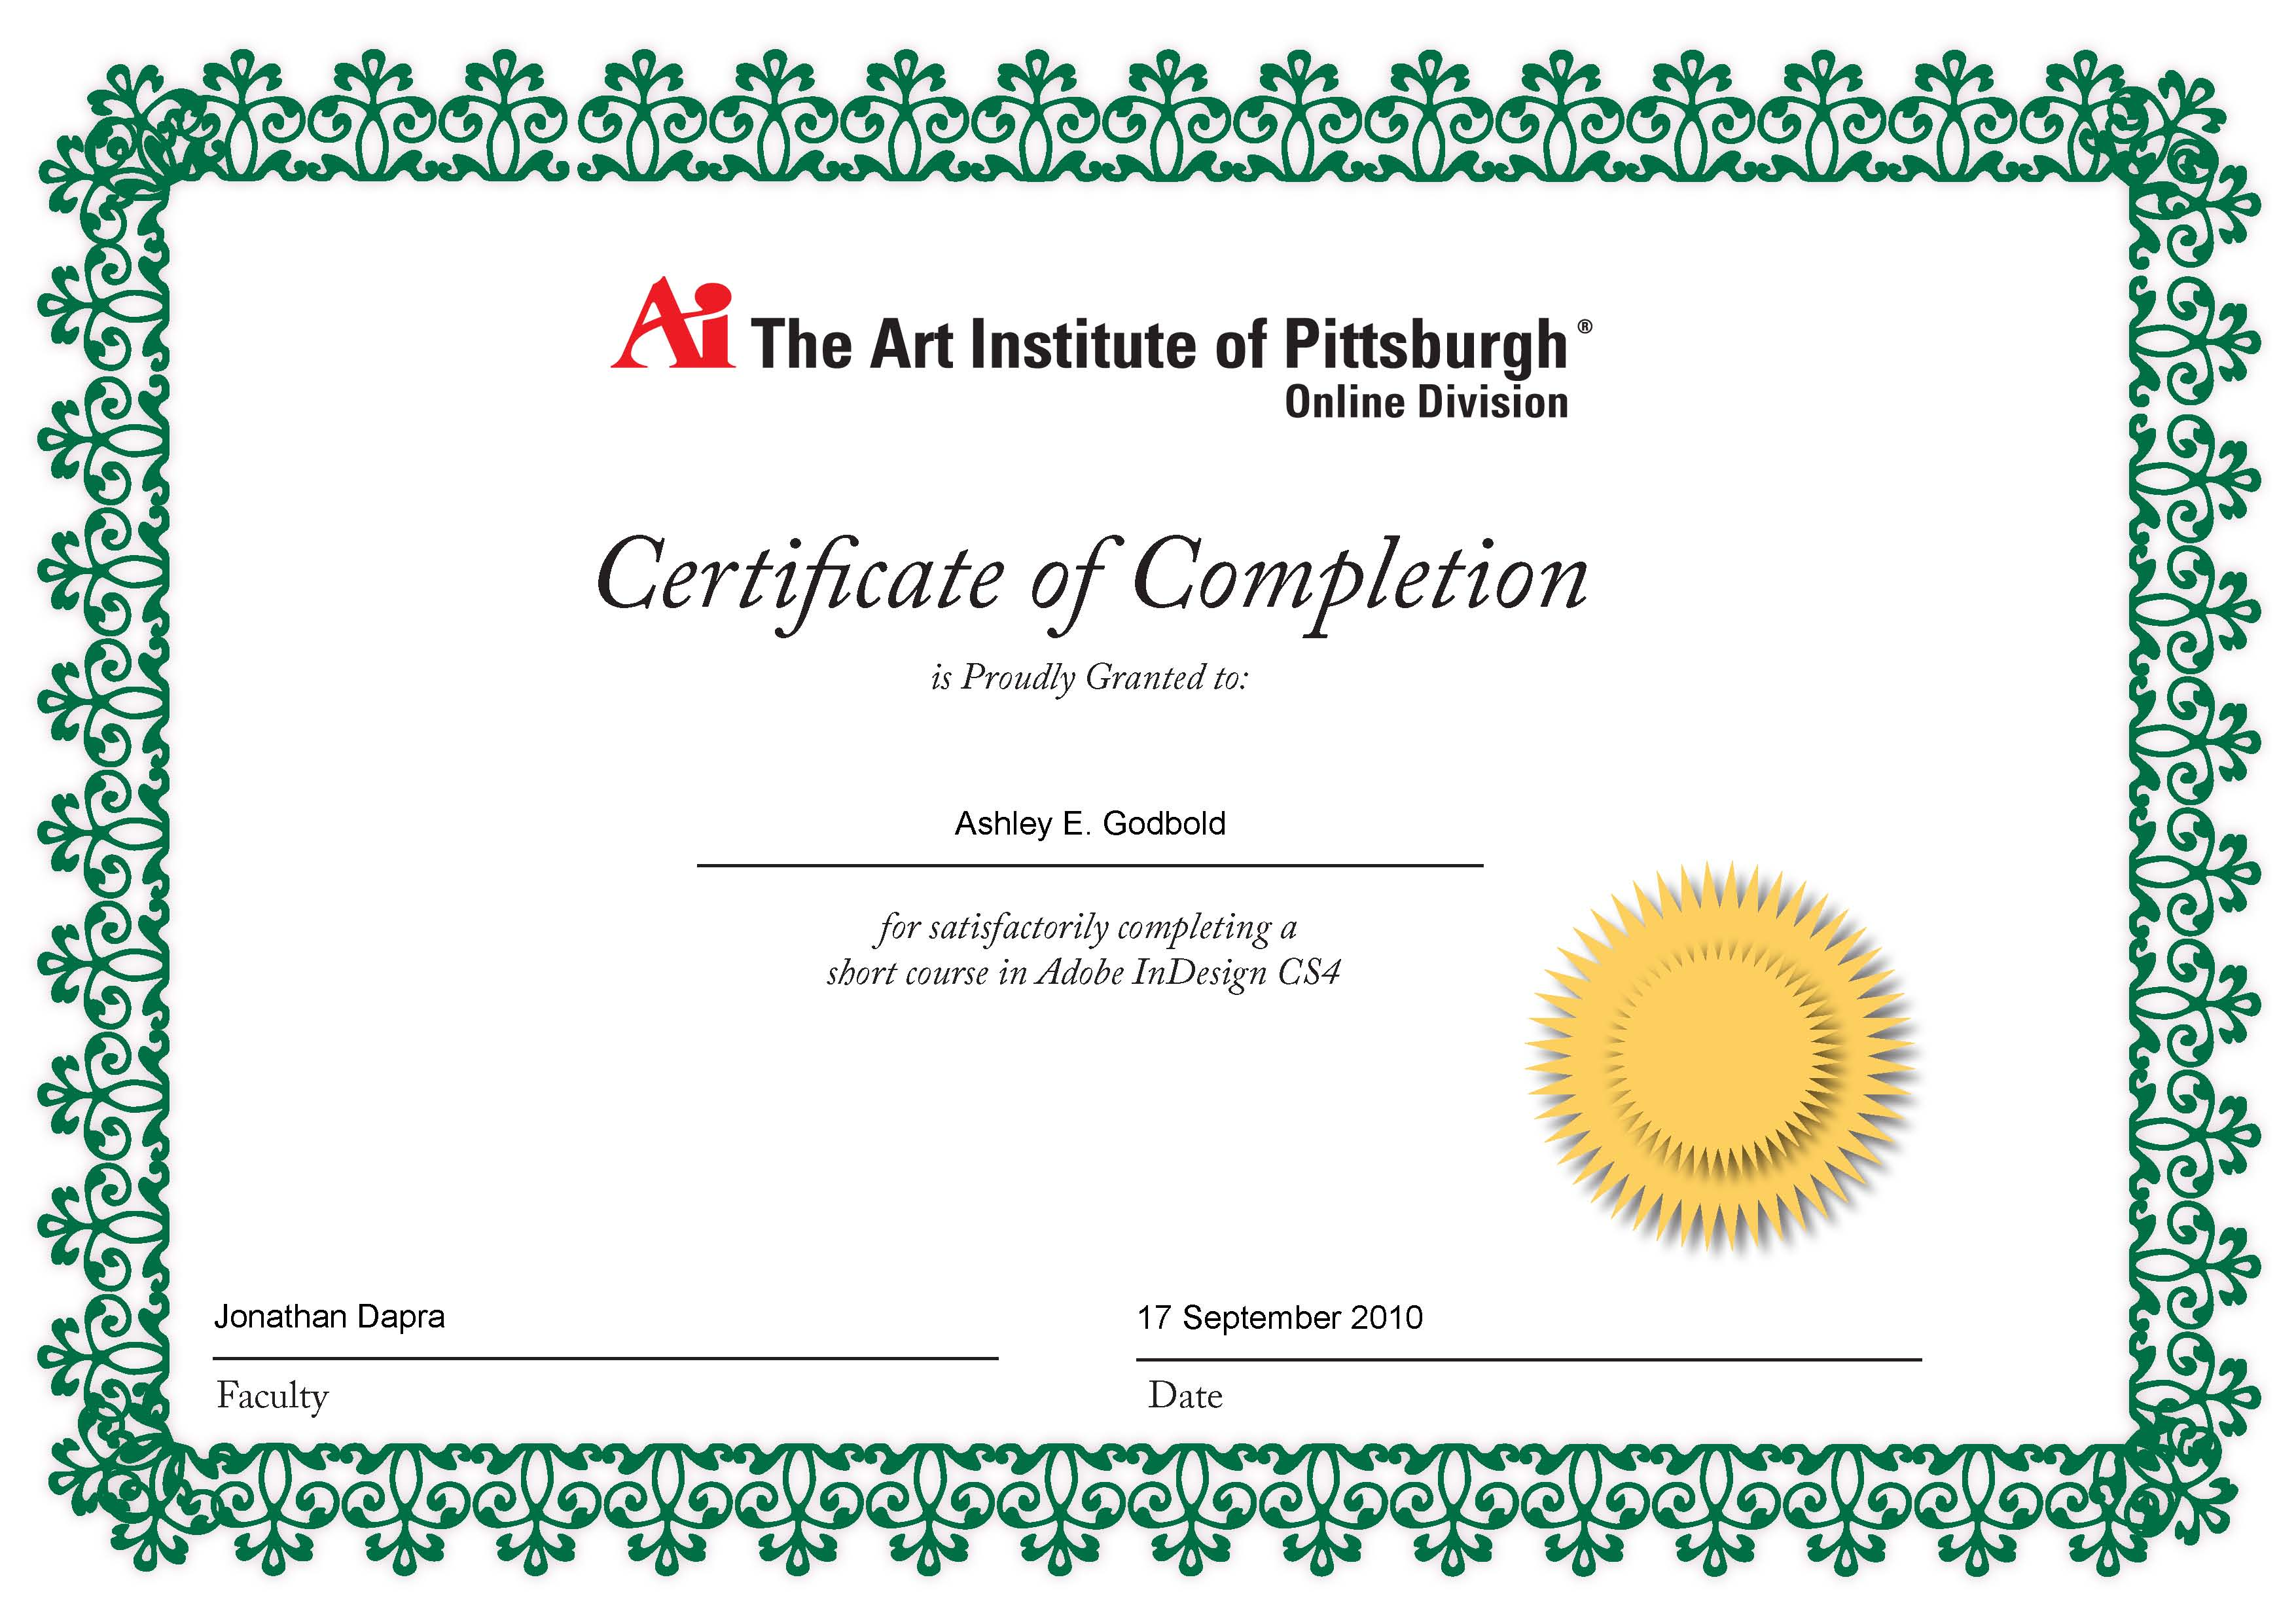 First color theory assignment and certificates of completion adobe indesign cs4 short course certificate of completion 1betcityfo Image collections